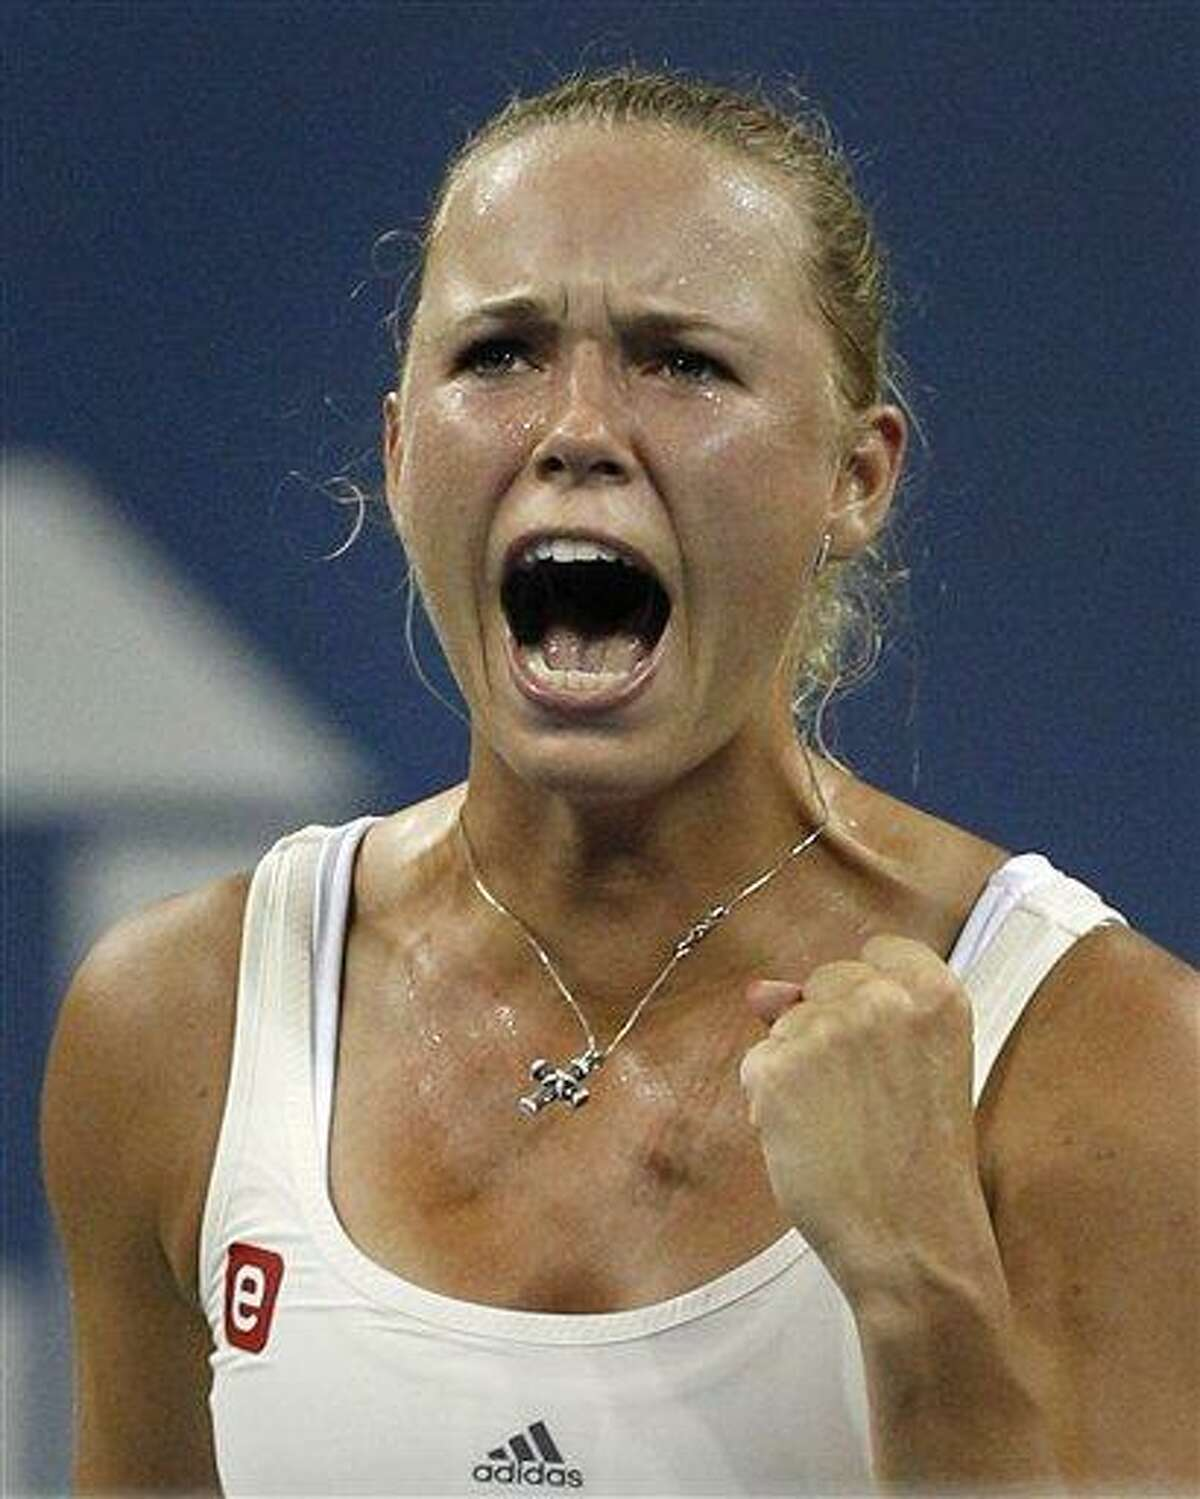 Caroline Wozniacki, of Denmark, reacts after winning a point in the second set of a match against Svetlana Kuznetsova, of Russia, during the U.S. Open tennis tournament in New York, Monday, Sept. 5, 2011. (AP Photo/Charles Krupa)